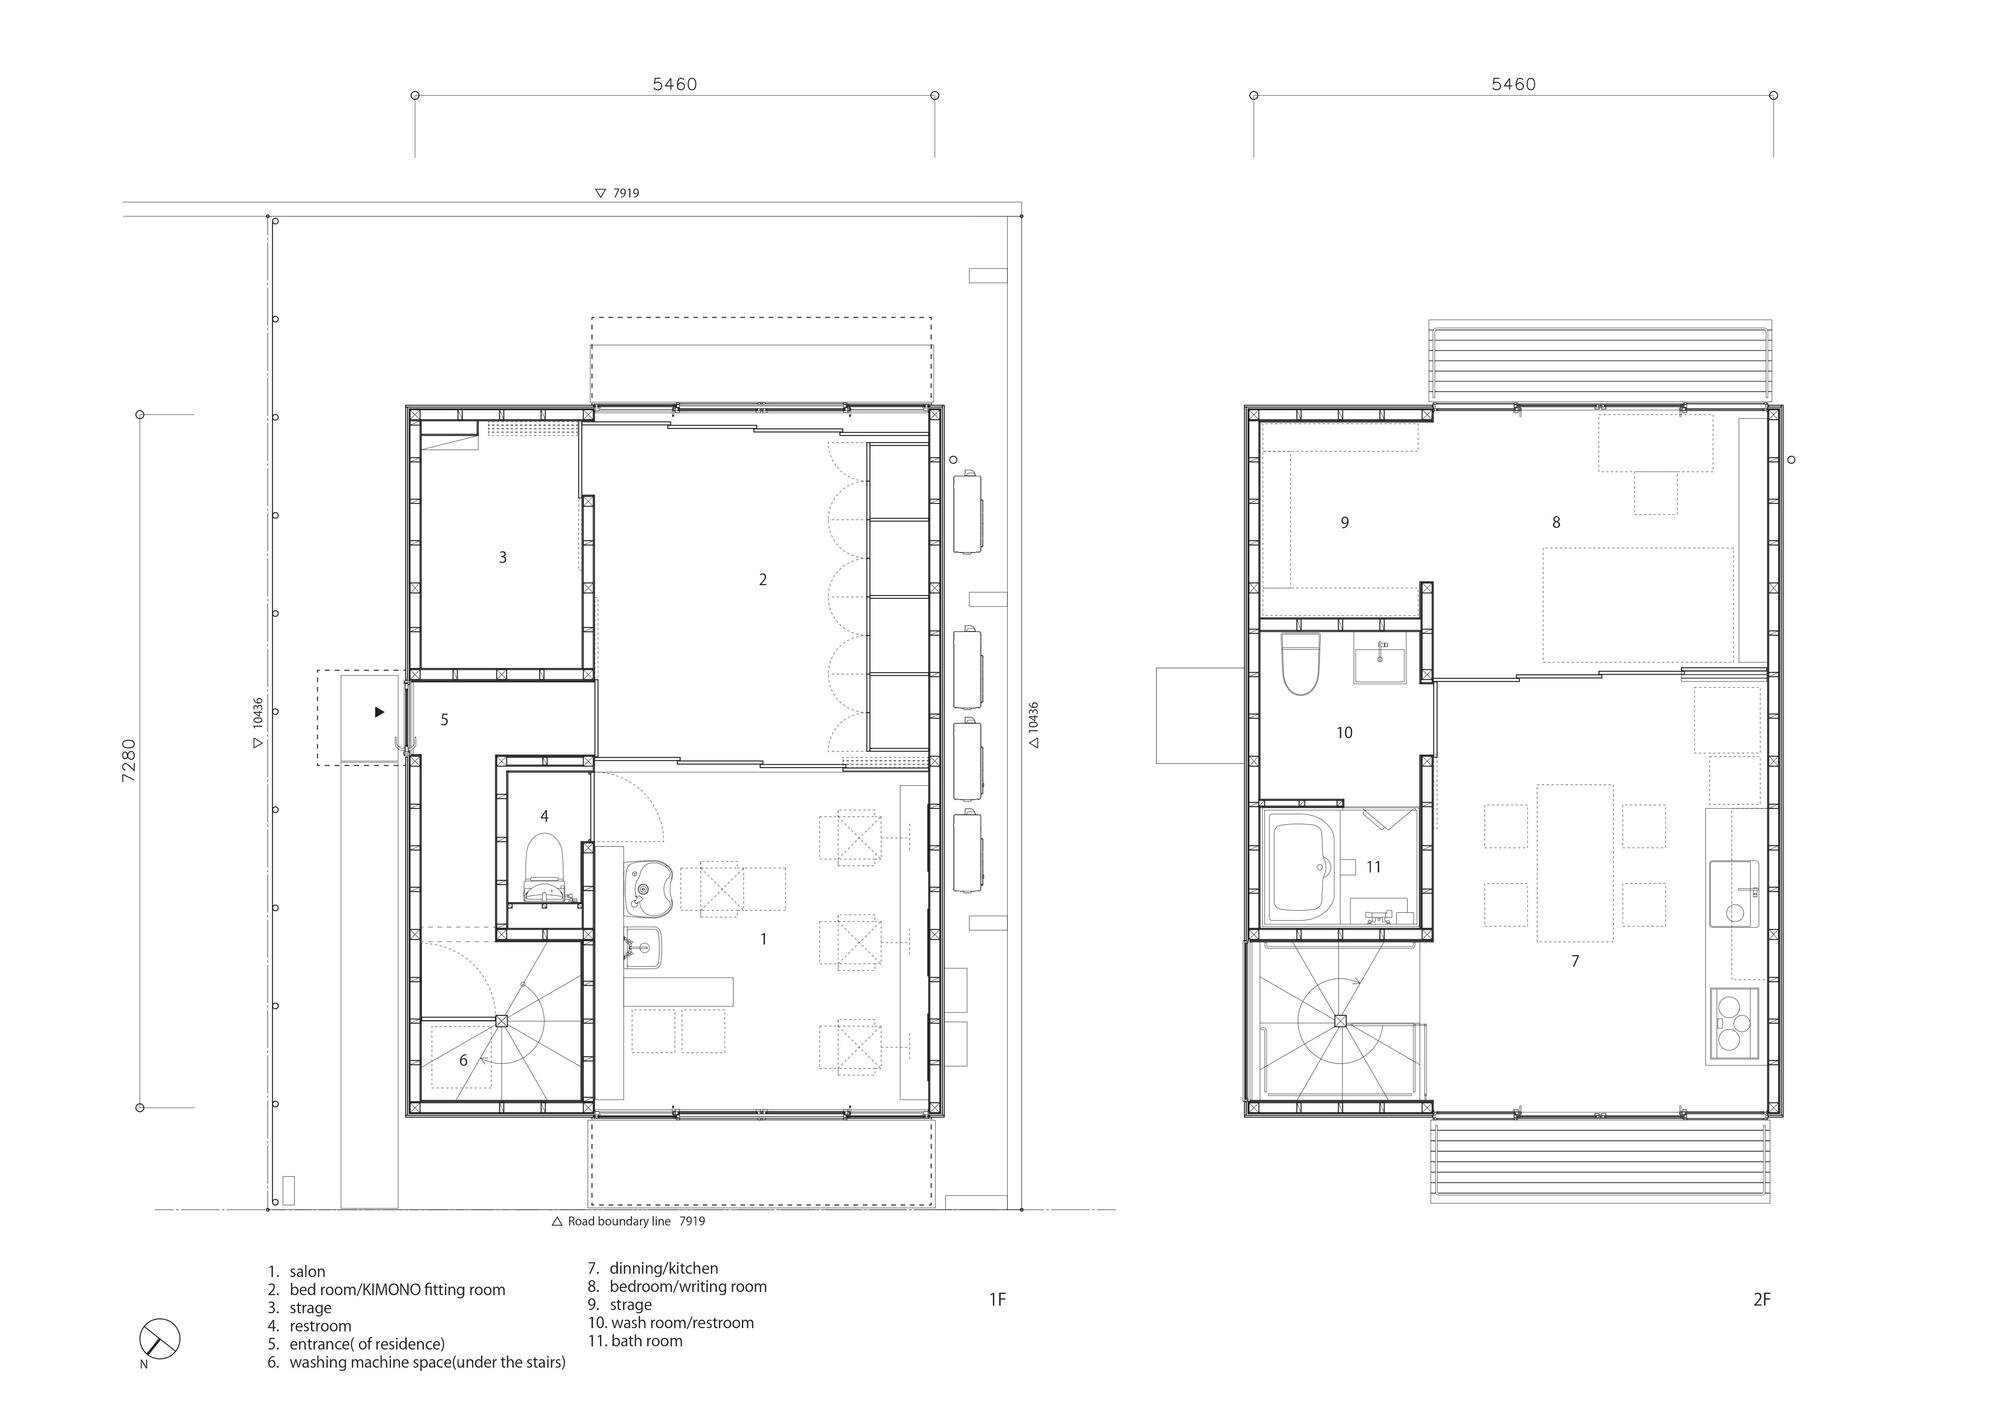 Wooden Box House - Suzuki Architects - Kawaguchi Japan - Floor Plan - Humble Homes